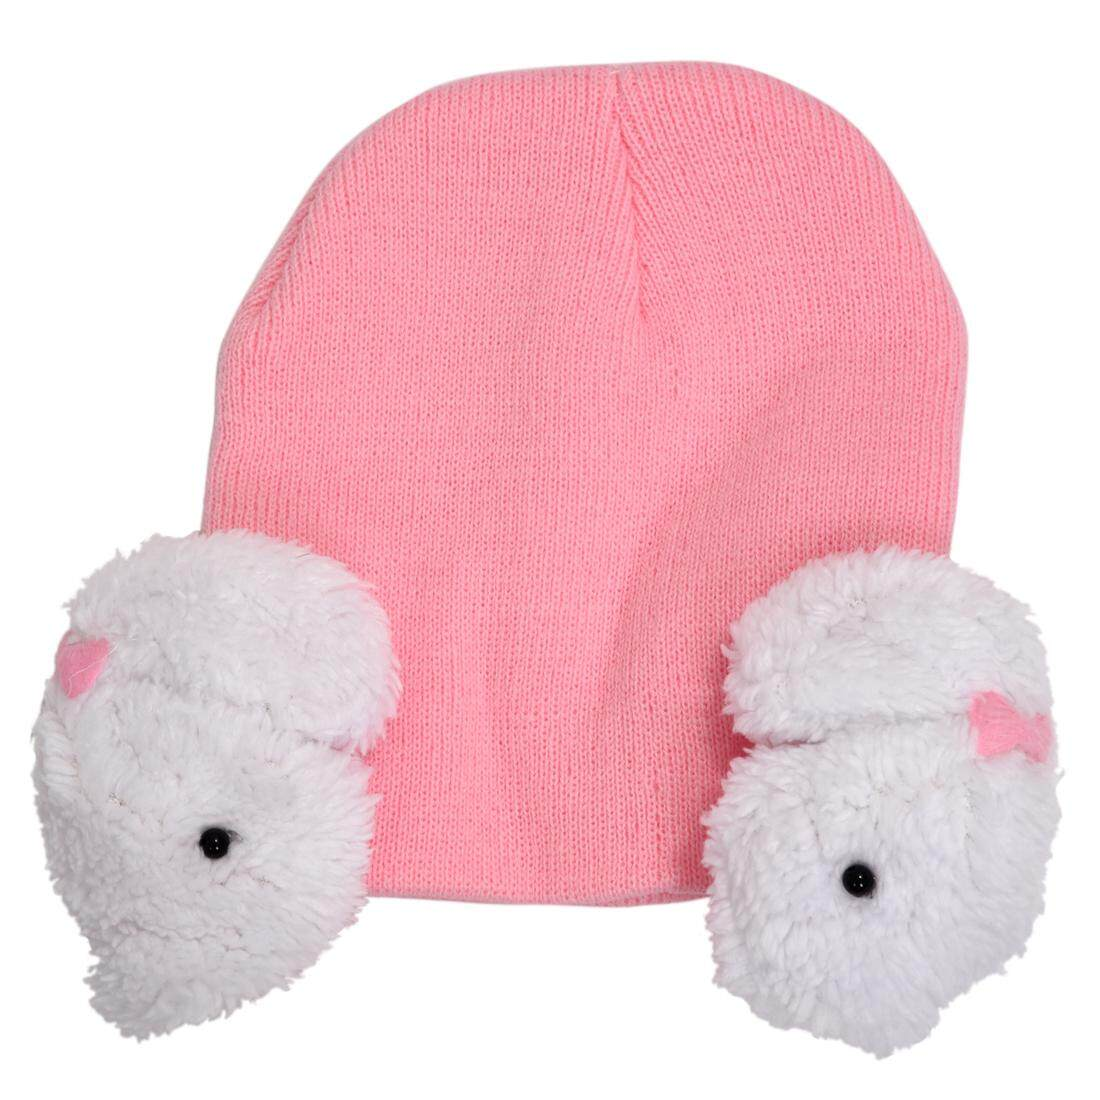 Baby Toddler Kids Boys Girl Winter Ear Flap Warm Hat Beanie Cap Crochet  Rabbit Pink 69c67e62dfa4